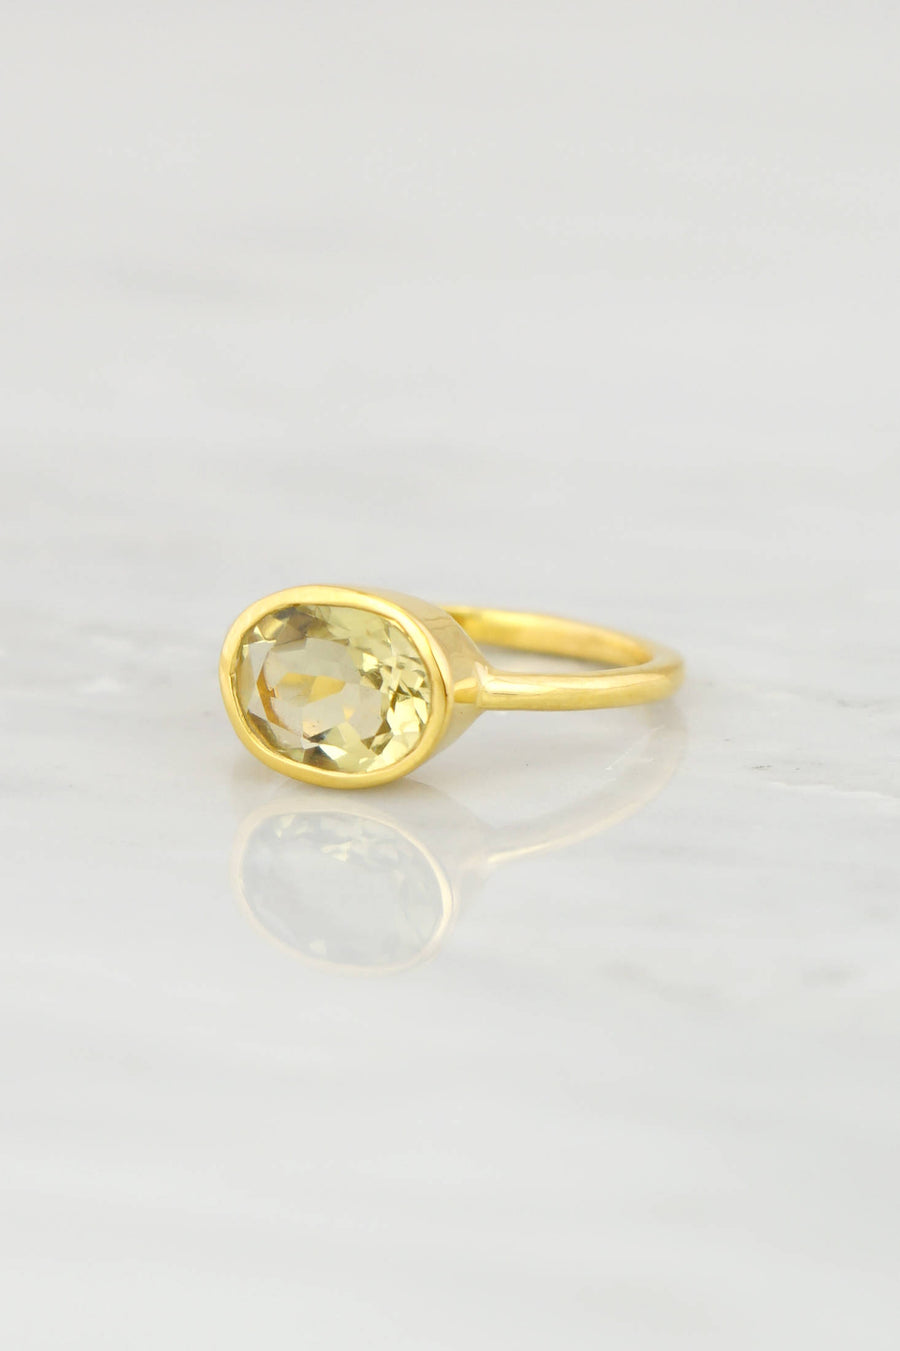 14k Gold Ring, Lemon Quartz Ring, Gemstone Ring, Stacking ring, Statement ring, Natural Stone ring, Genuine Stone ring, Solid Gold ring